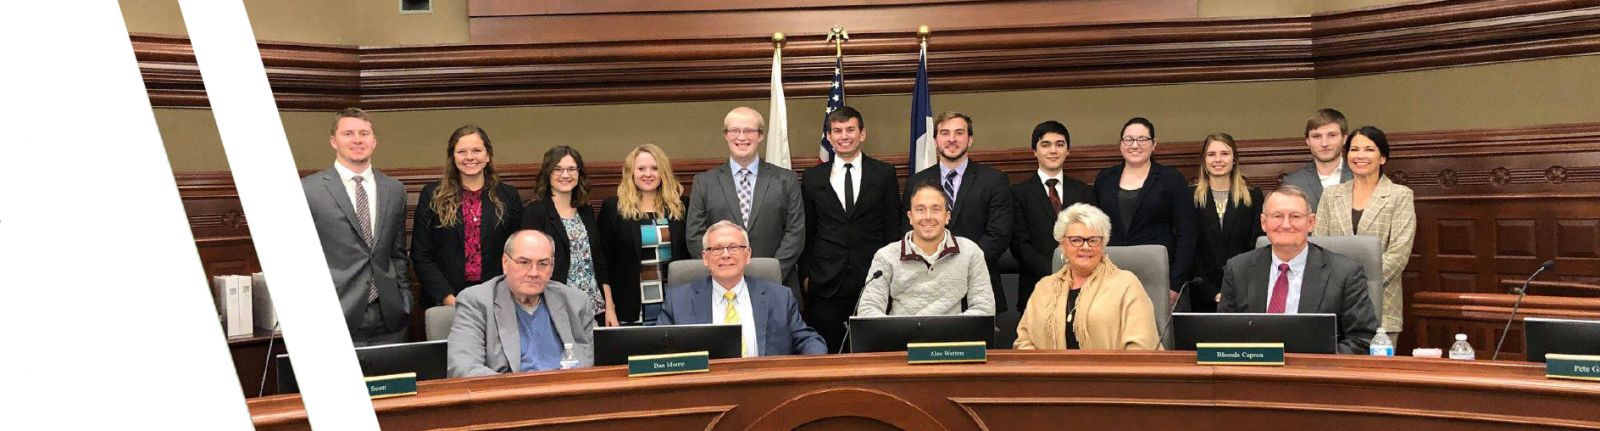 accounting students and city officials